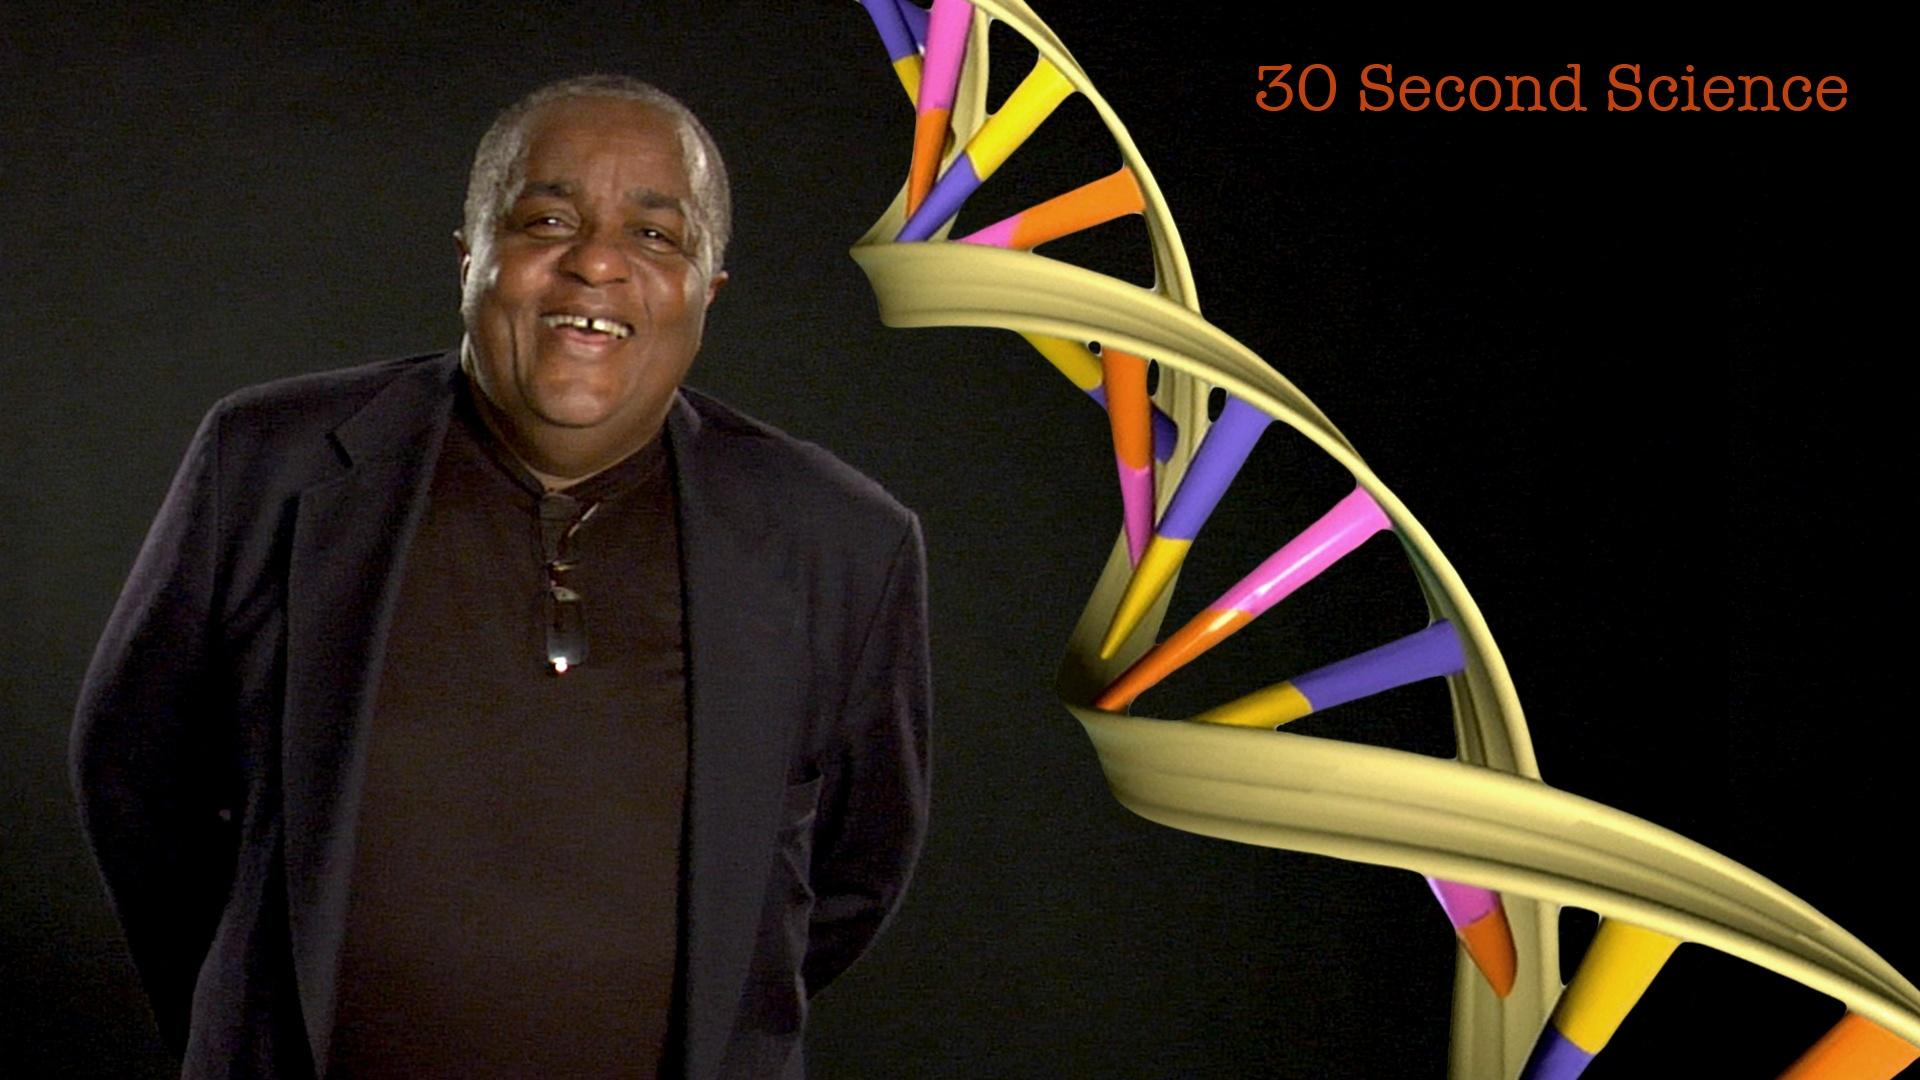 30 Second Science: Bruce Jackson image